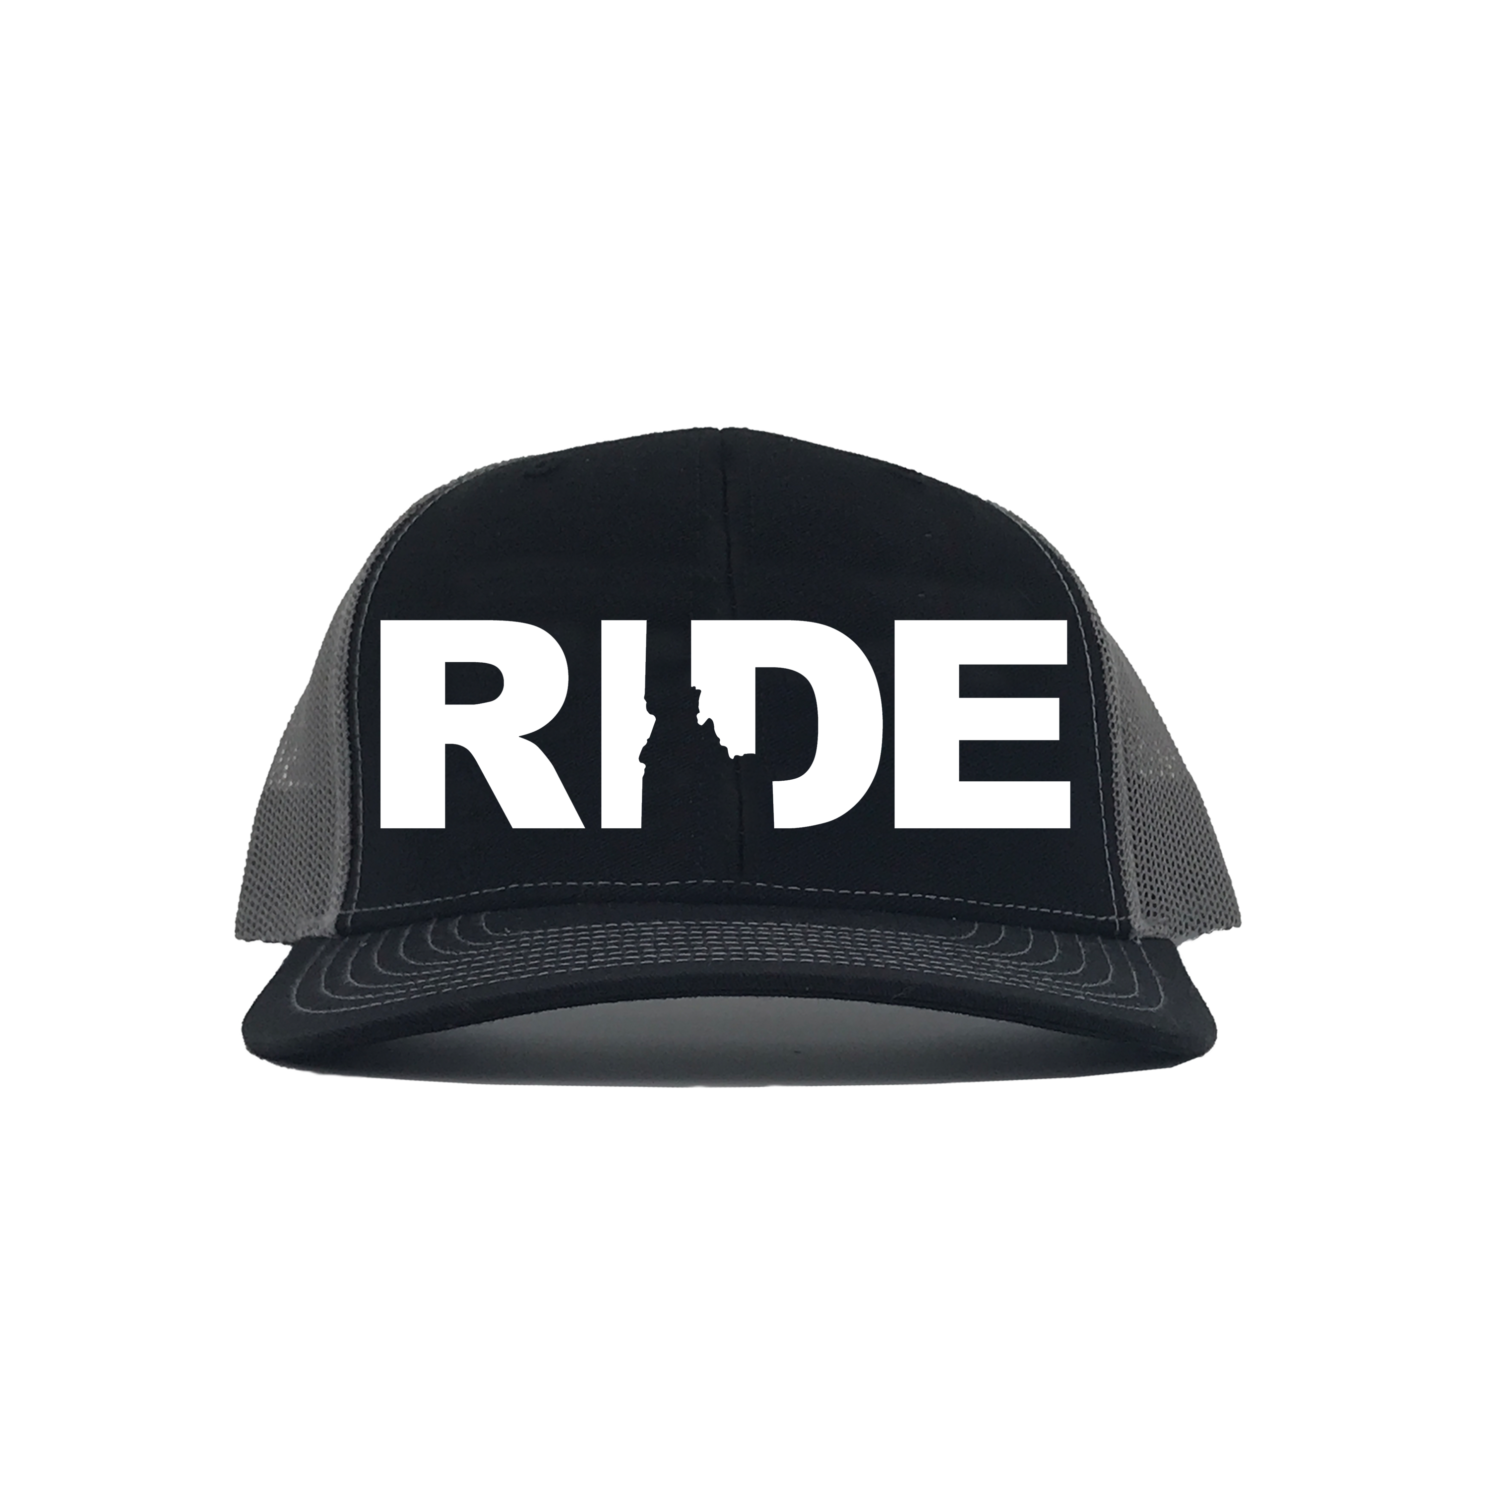 Ride Idaho Classic Embroidered Snapback Trucker Hat Black/White